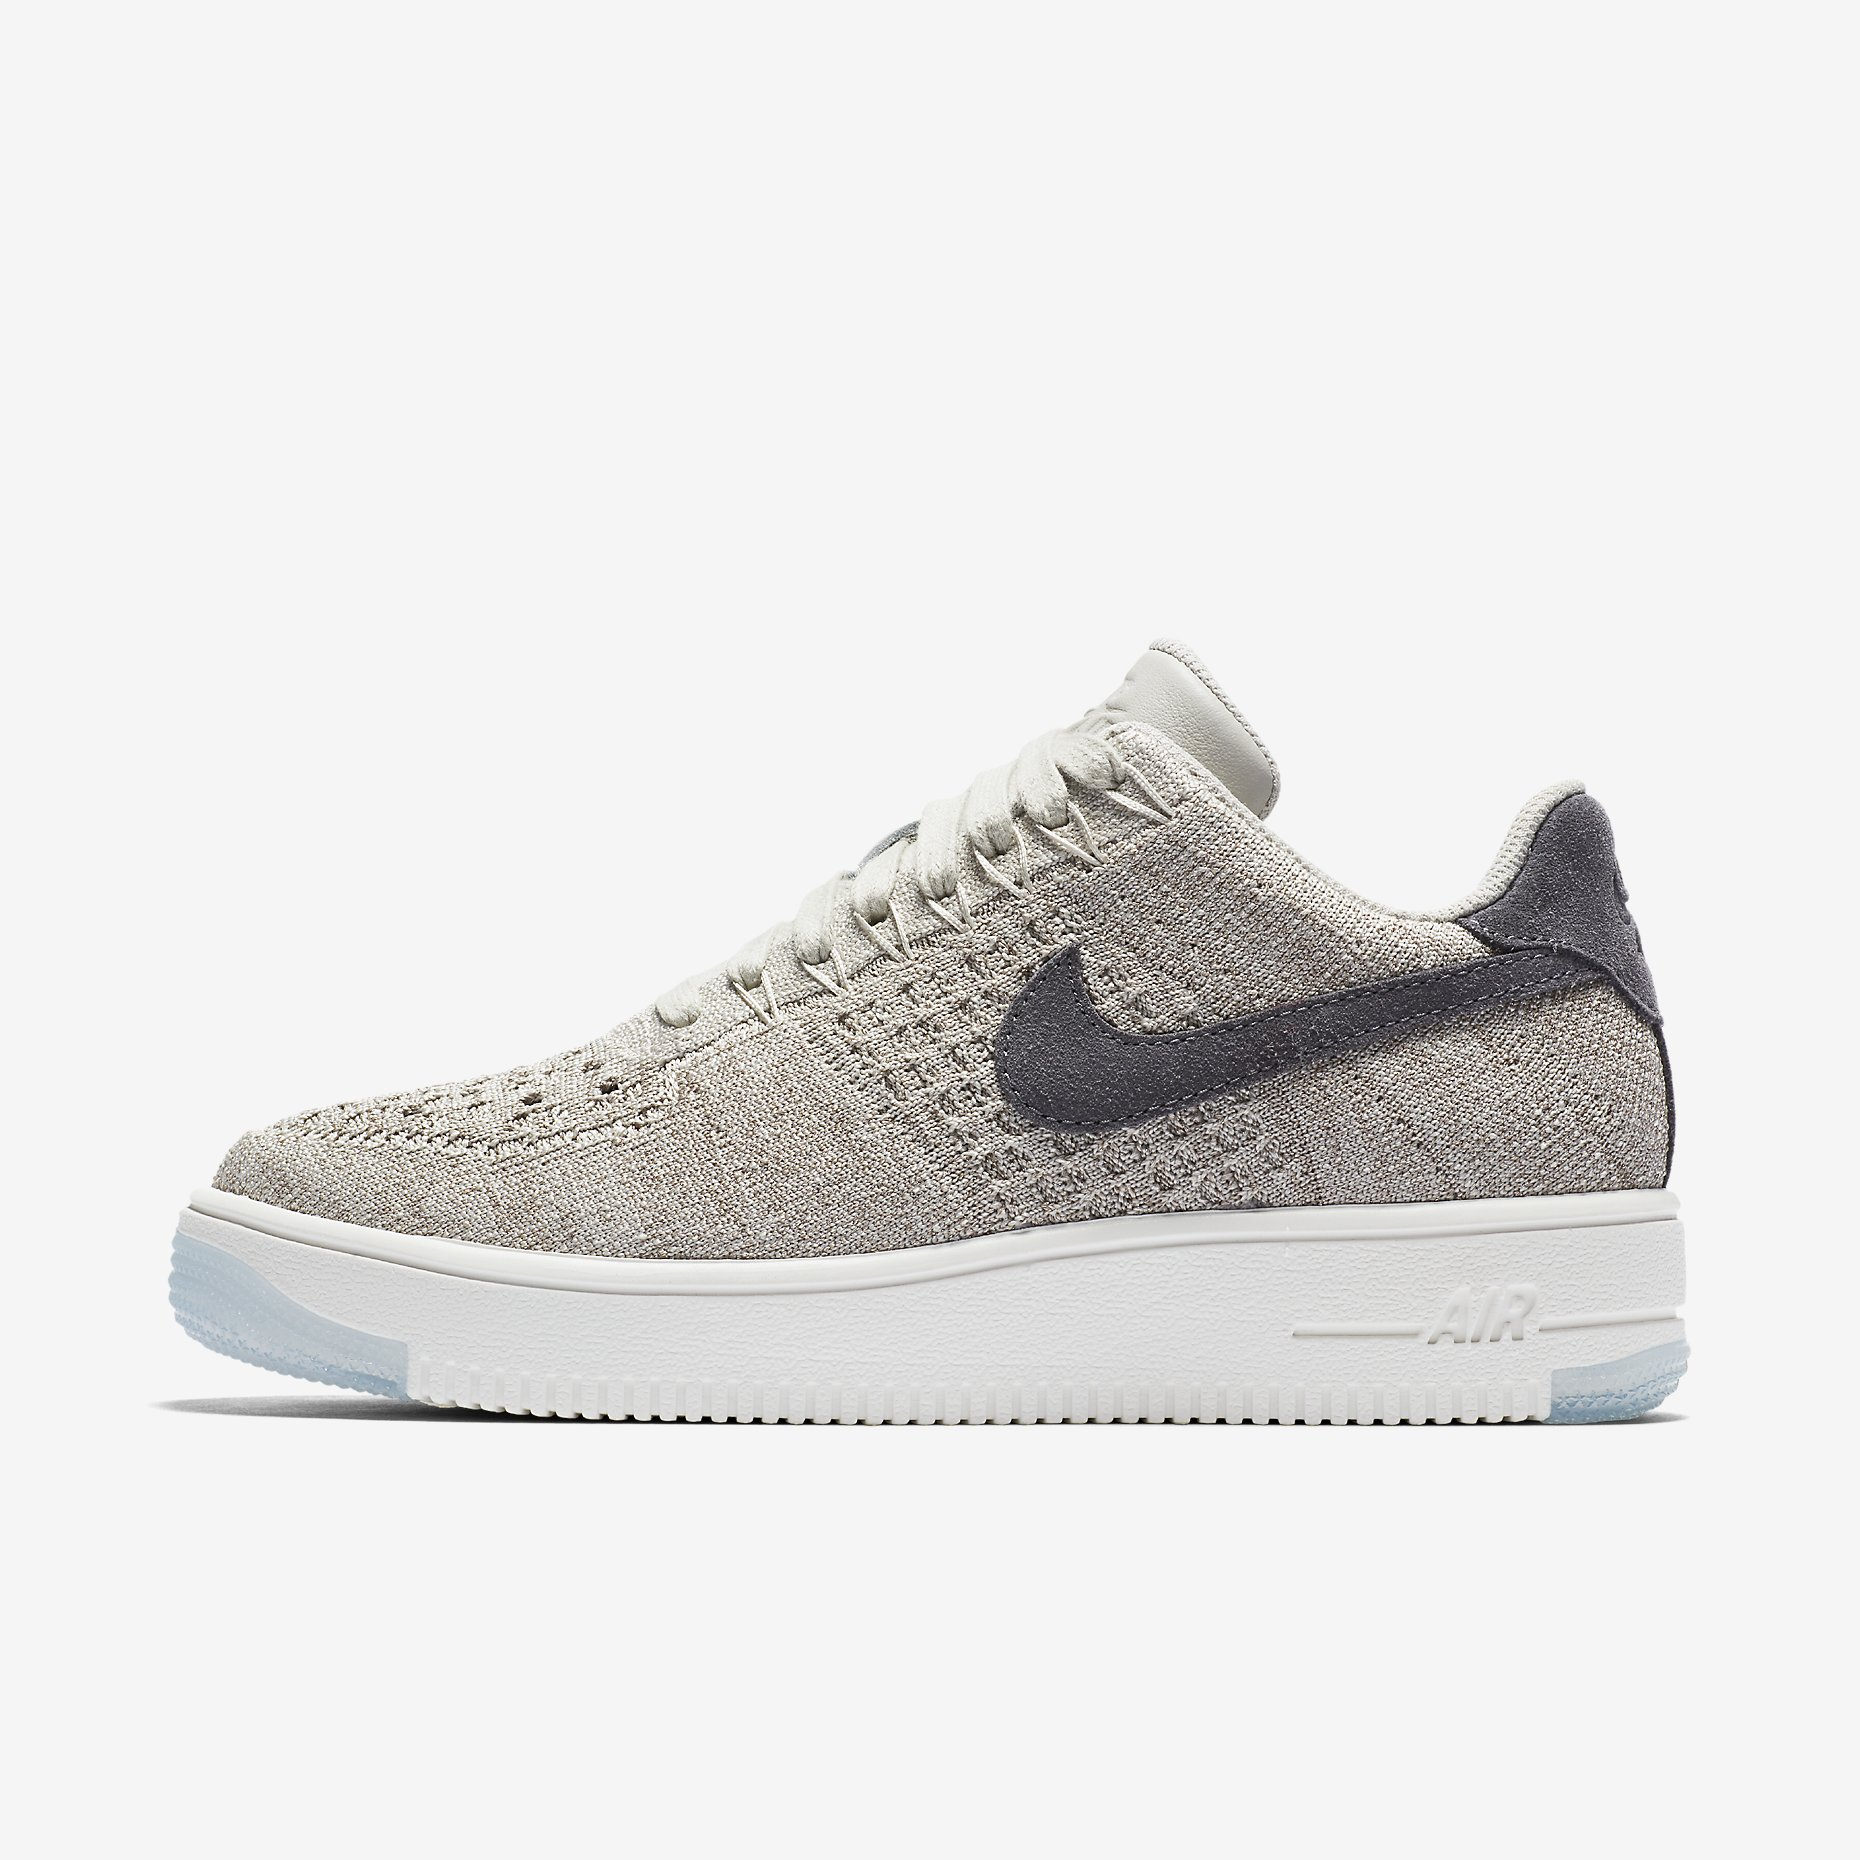 c603fdd667f94 Home   Women   Air Force 1 Flyknit Low